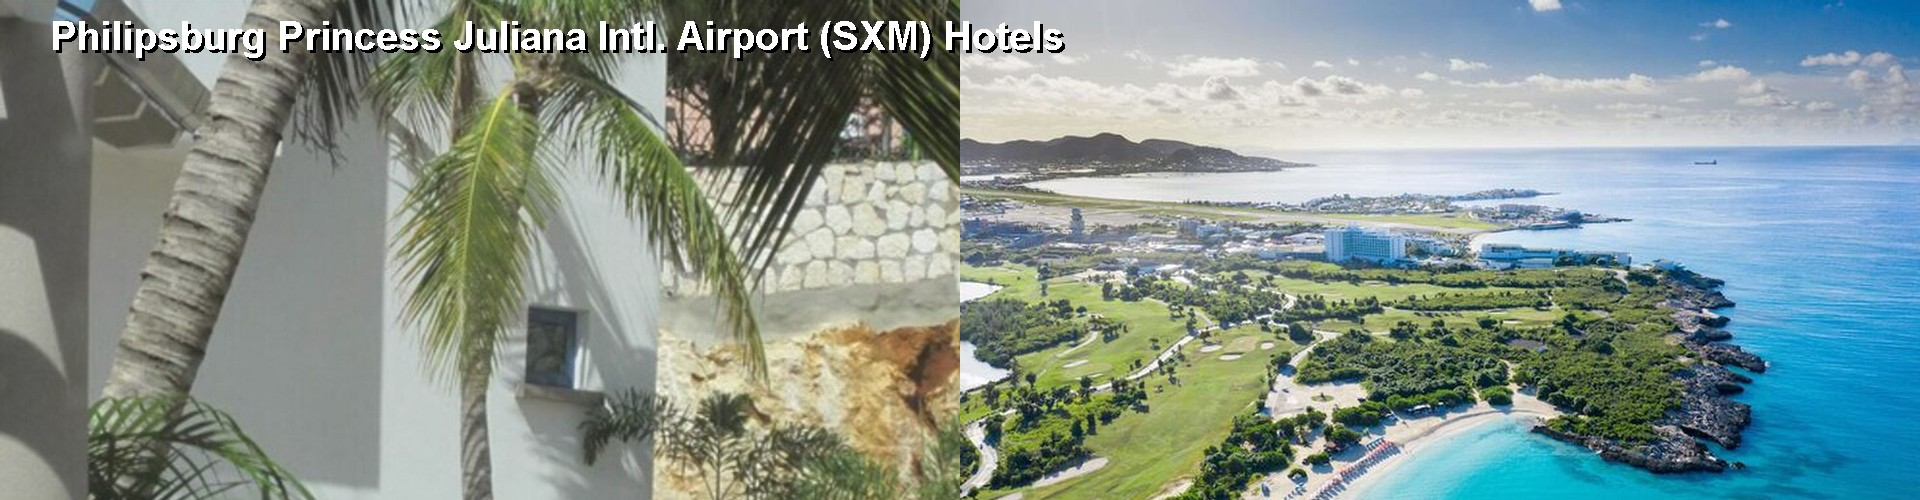 5 Best Hotels near Philipsburg Princess Juliana Intl. Airport (SXM)